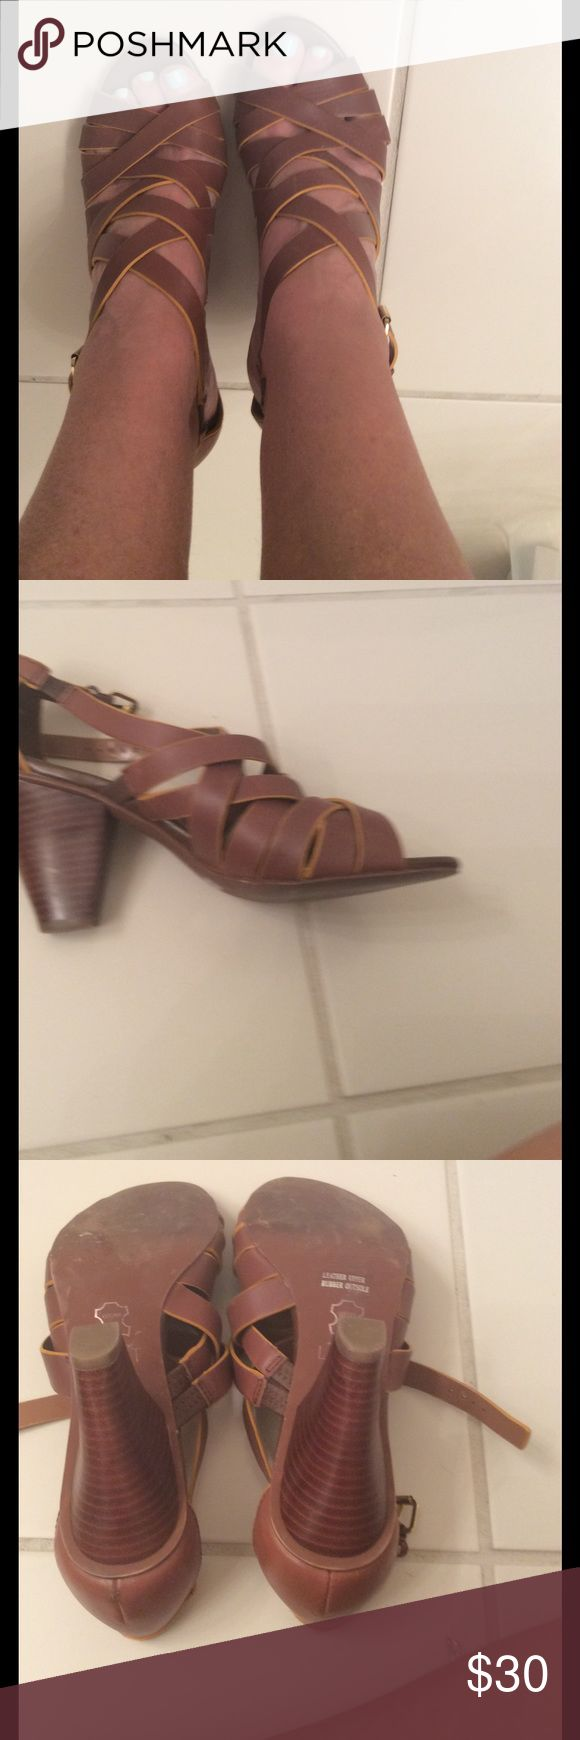 Loft sandal with heel Cute brown leather Loft sandals with 7 inch heel. Worn once excellent condition. LOFT Shoes Sandals